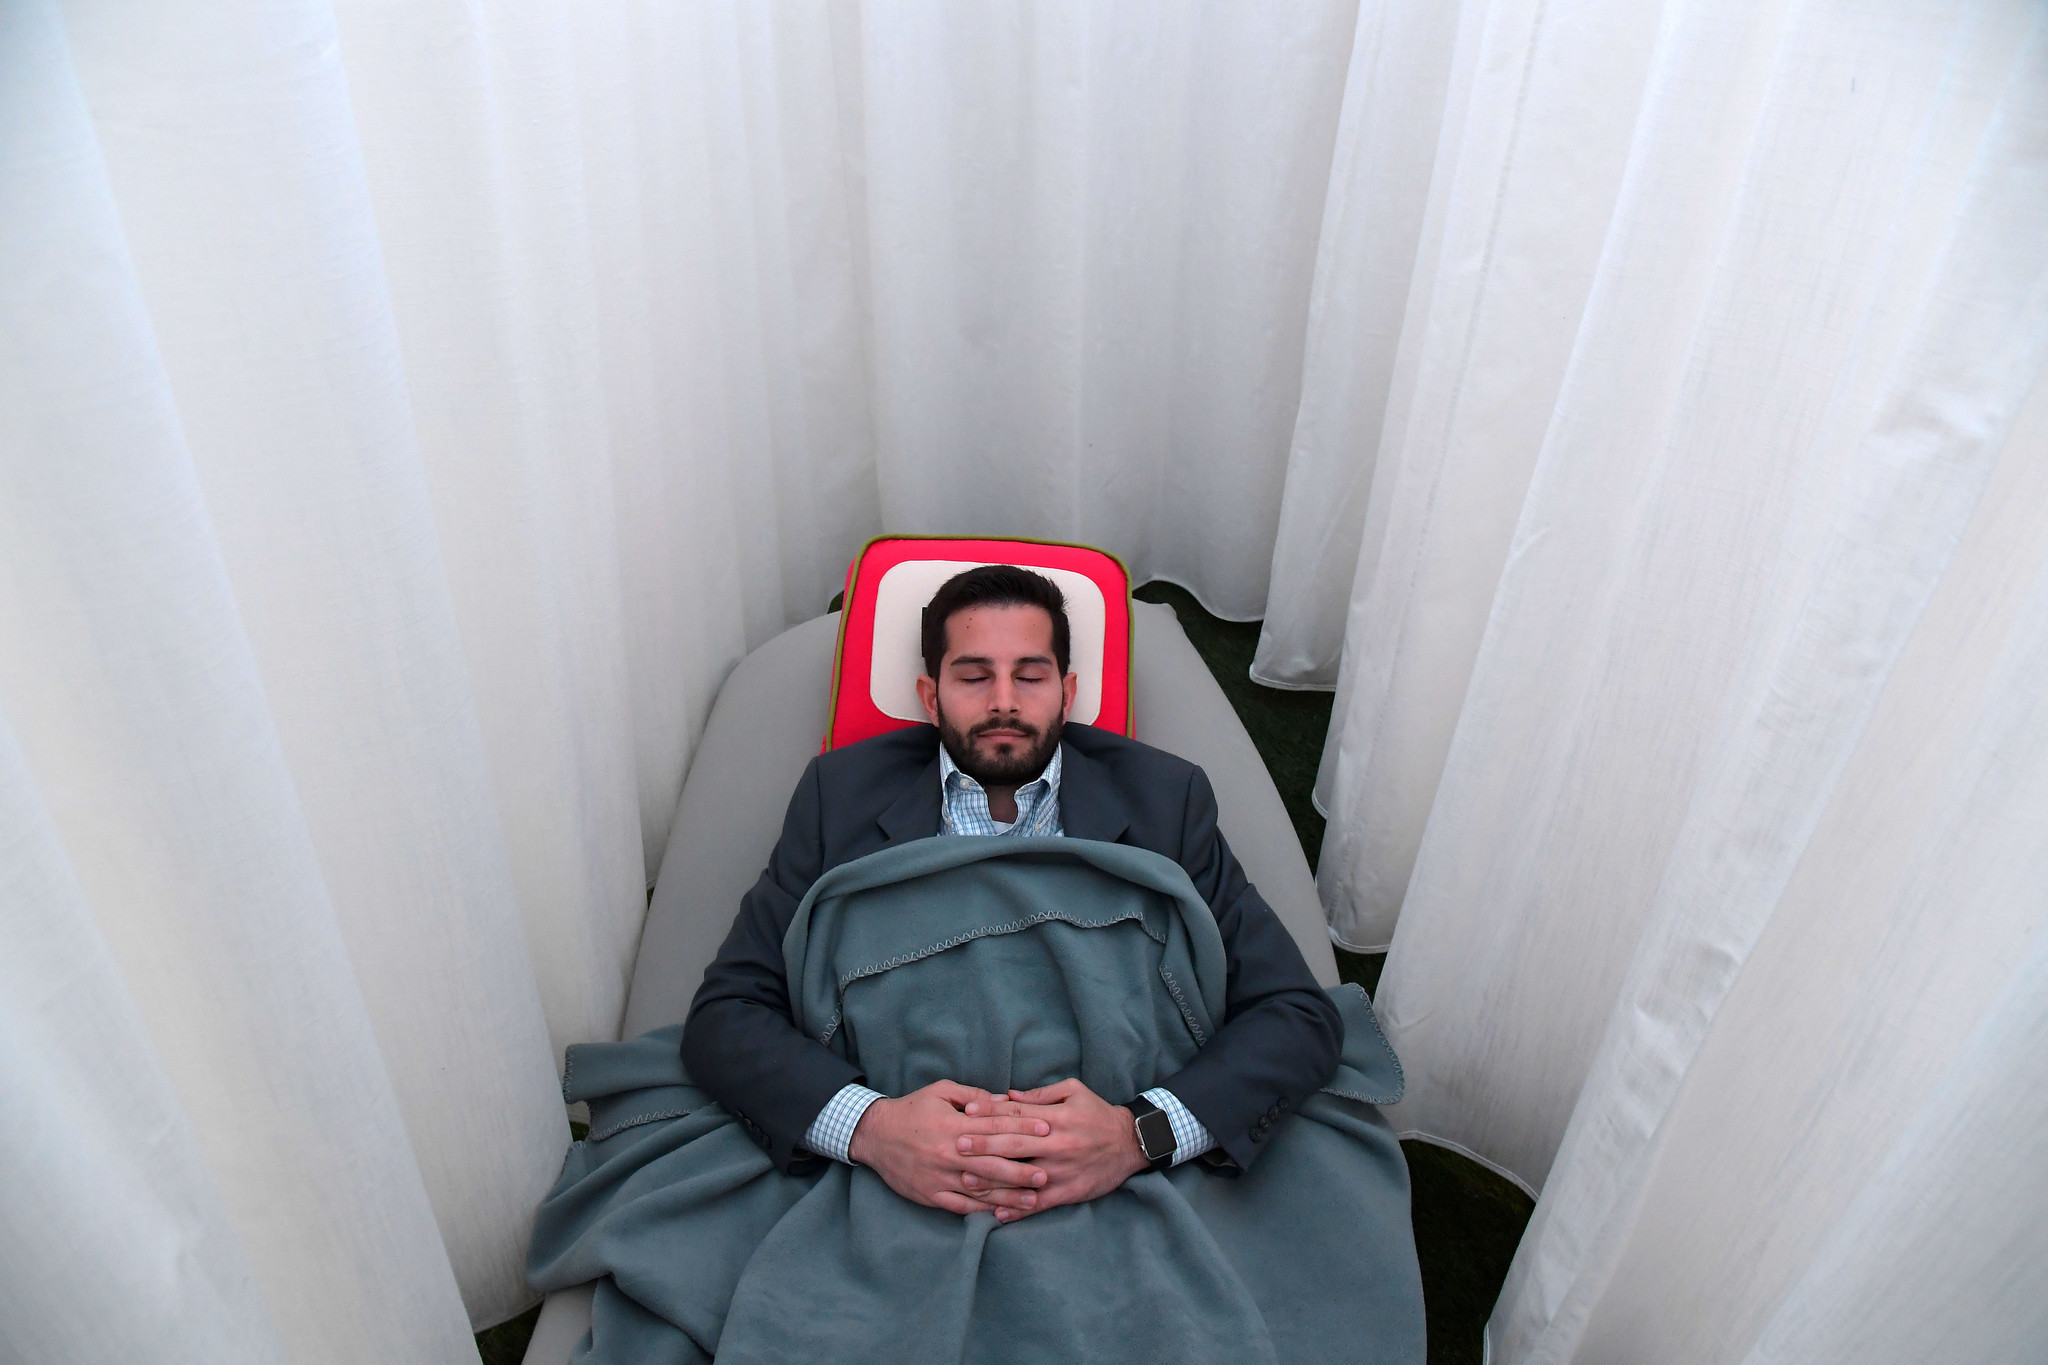 Napping on the job could possibly be a game changer for sleep-deprived nations